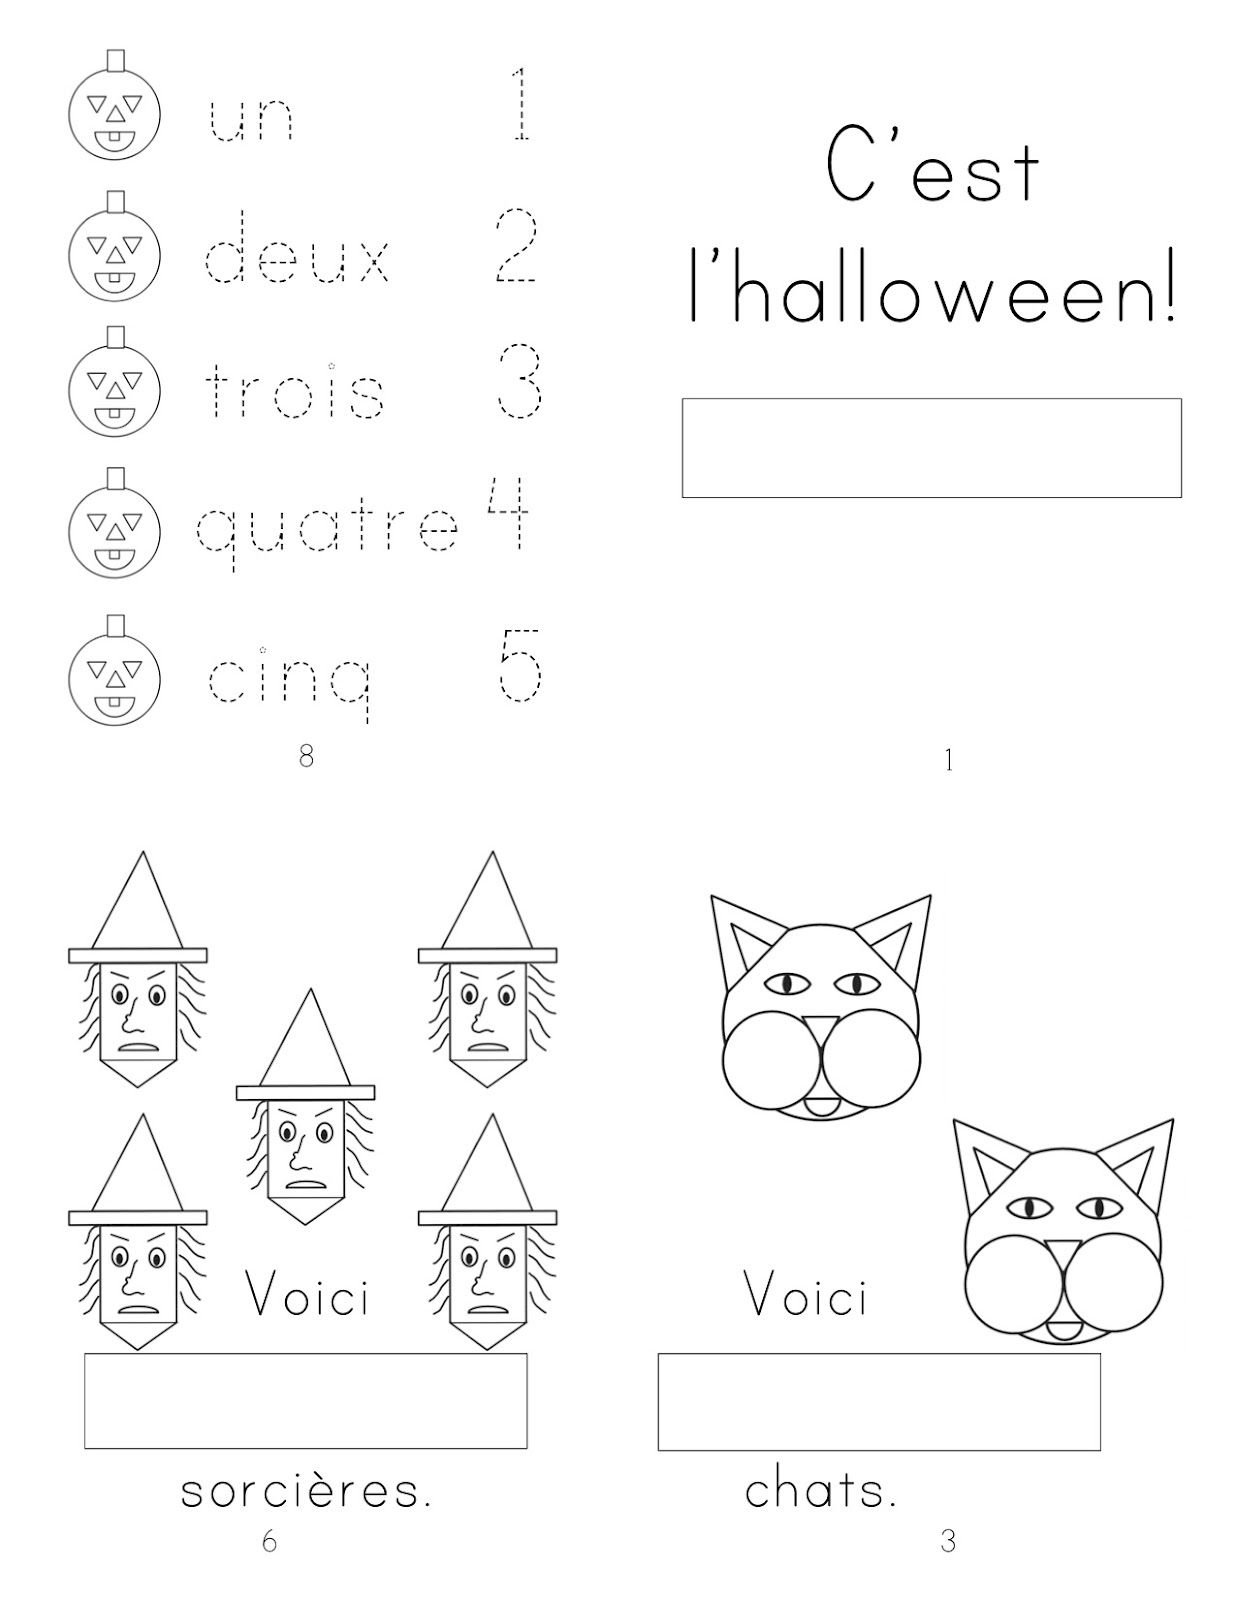 French Halloween Mini Book For Students To Complete